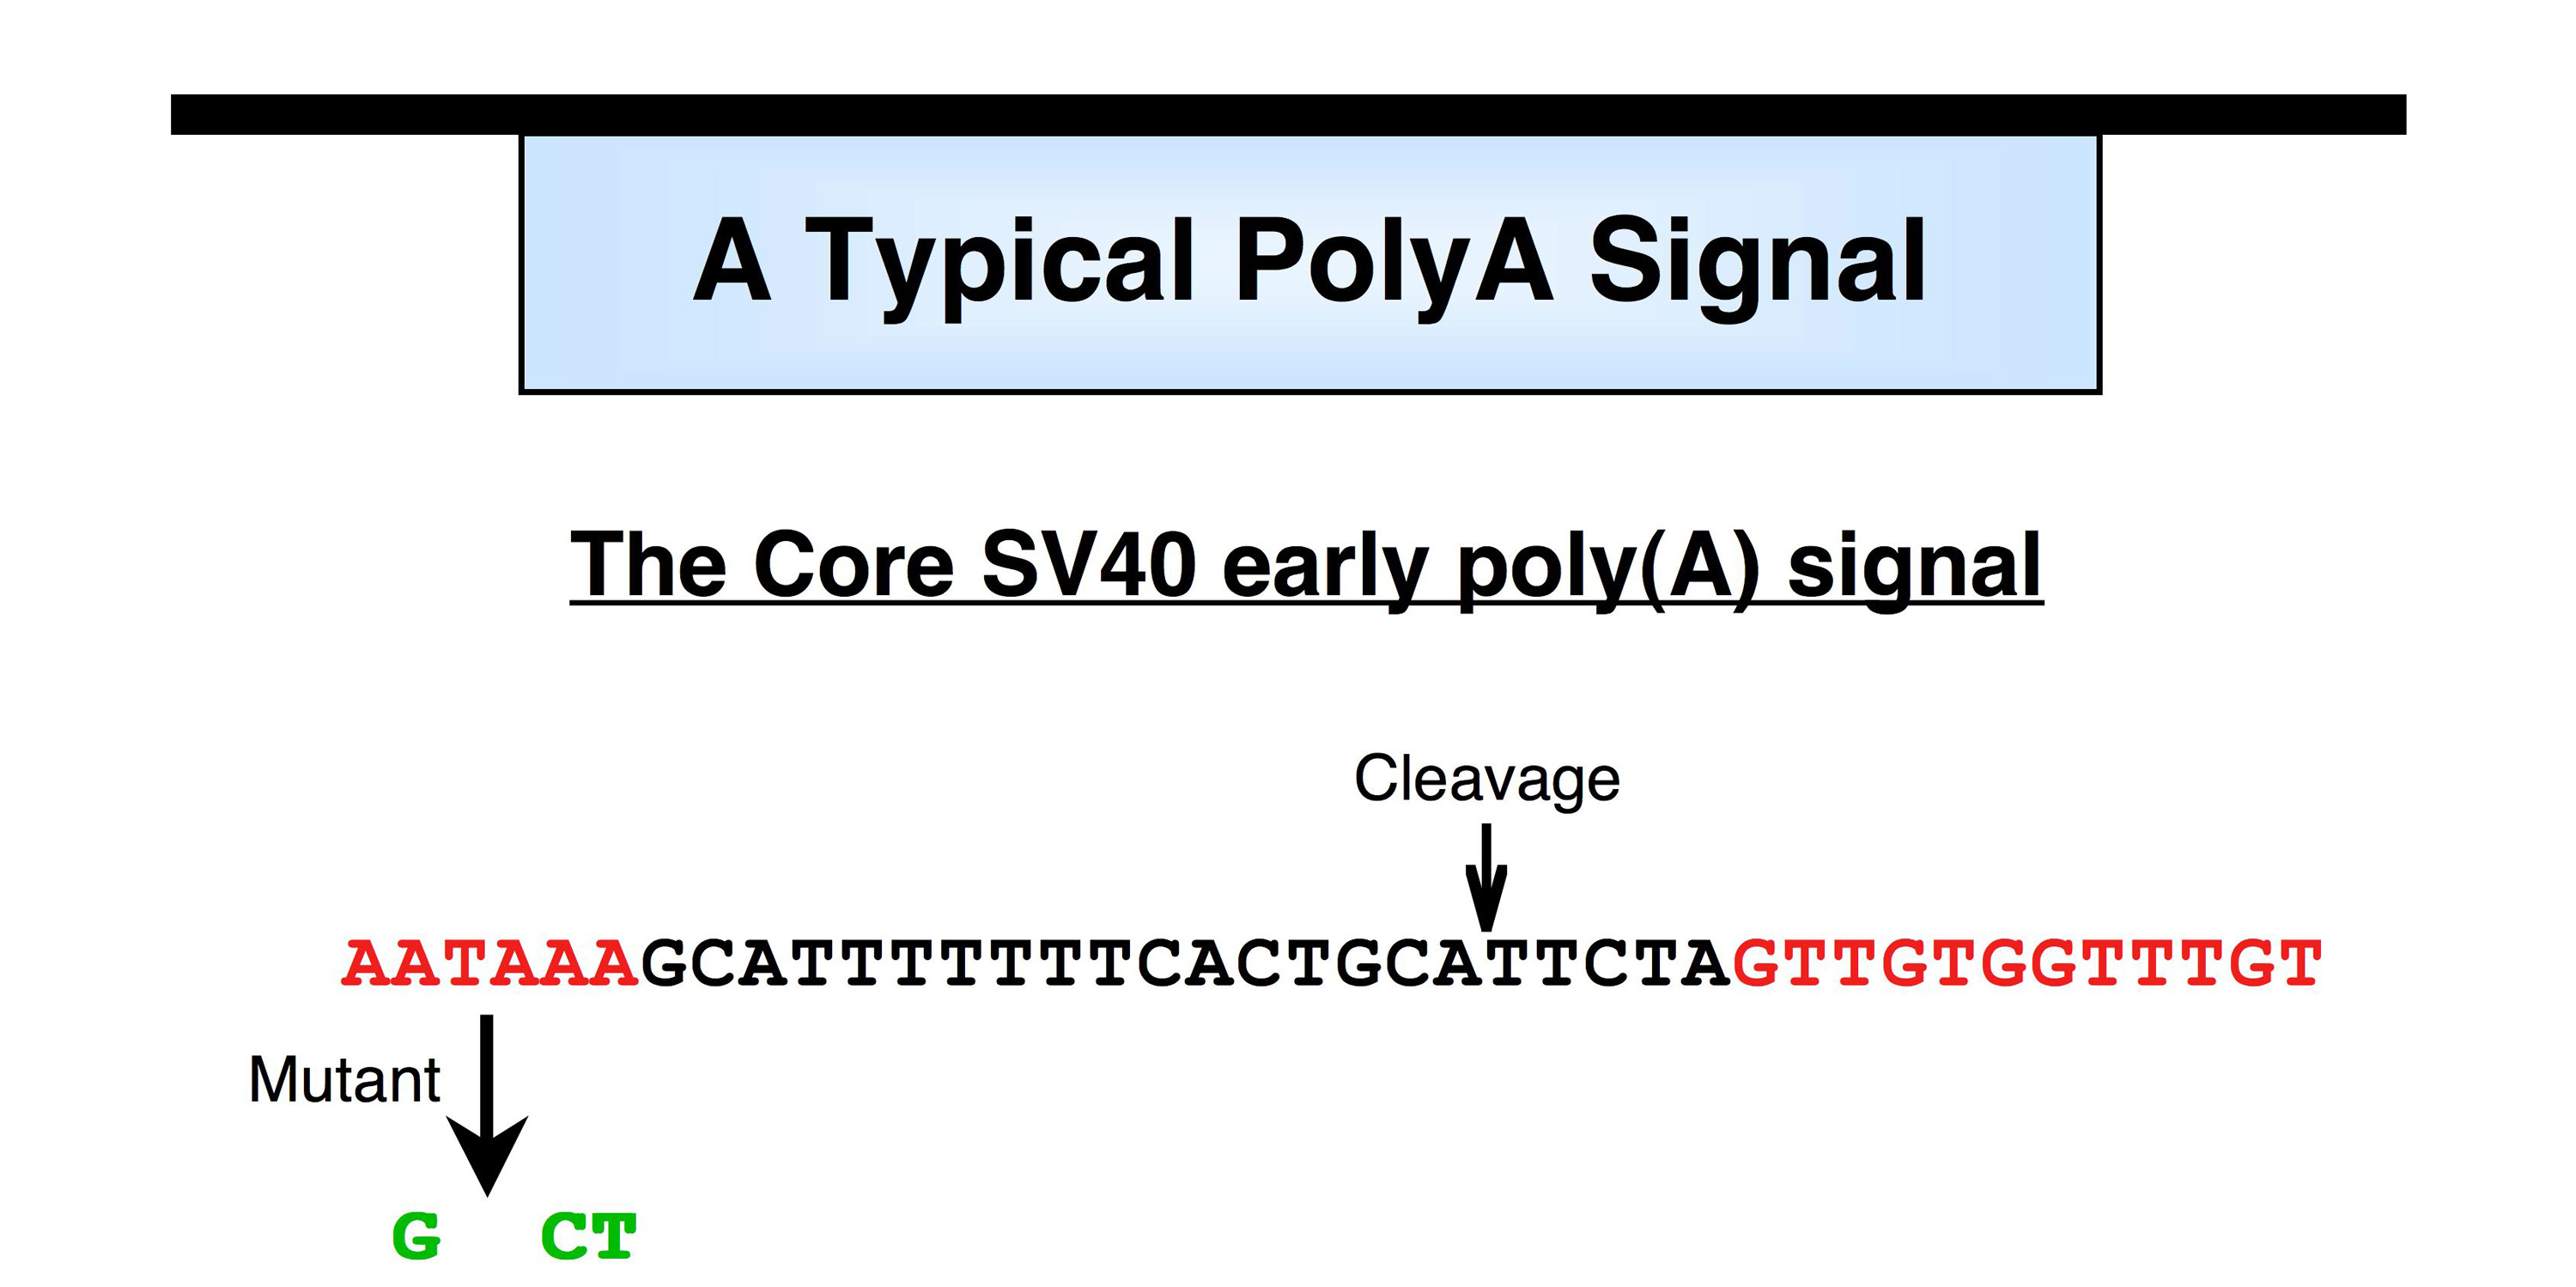 processes of polyadenylation Component of the cleavage and polyadenylation specificity factor (cpsf) complex that plays a key role in pre-mrna 3'-end formation, recognizing the aauaaa signal sequence and interacting with poly(a) polymerase and other factors to bring about cleavage and poly(a) addition.